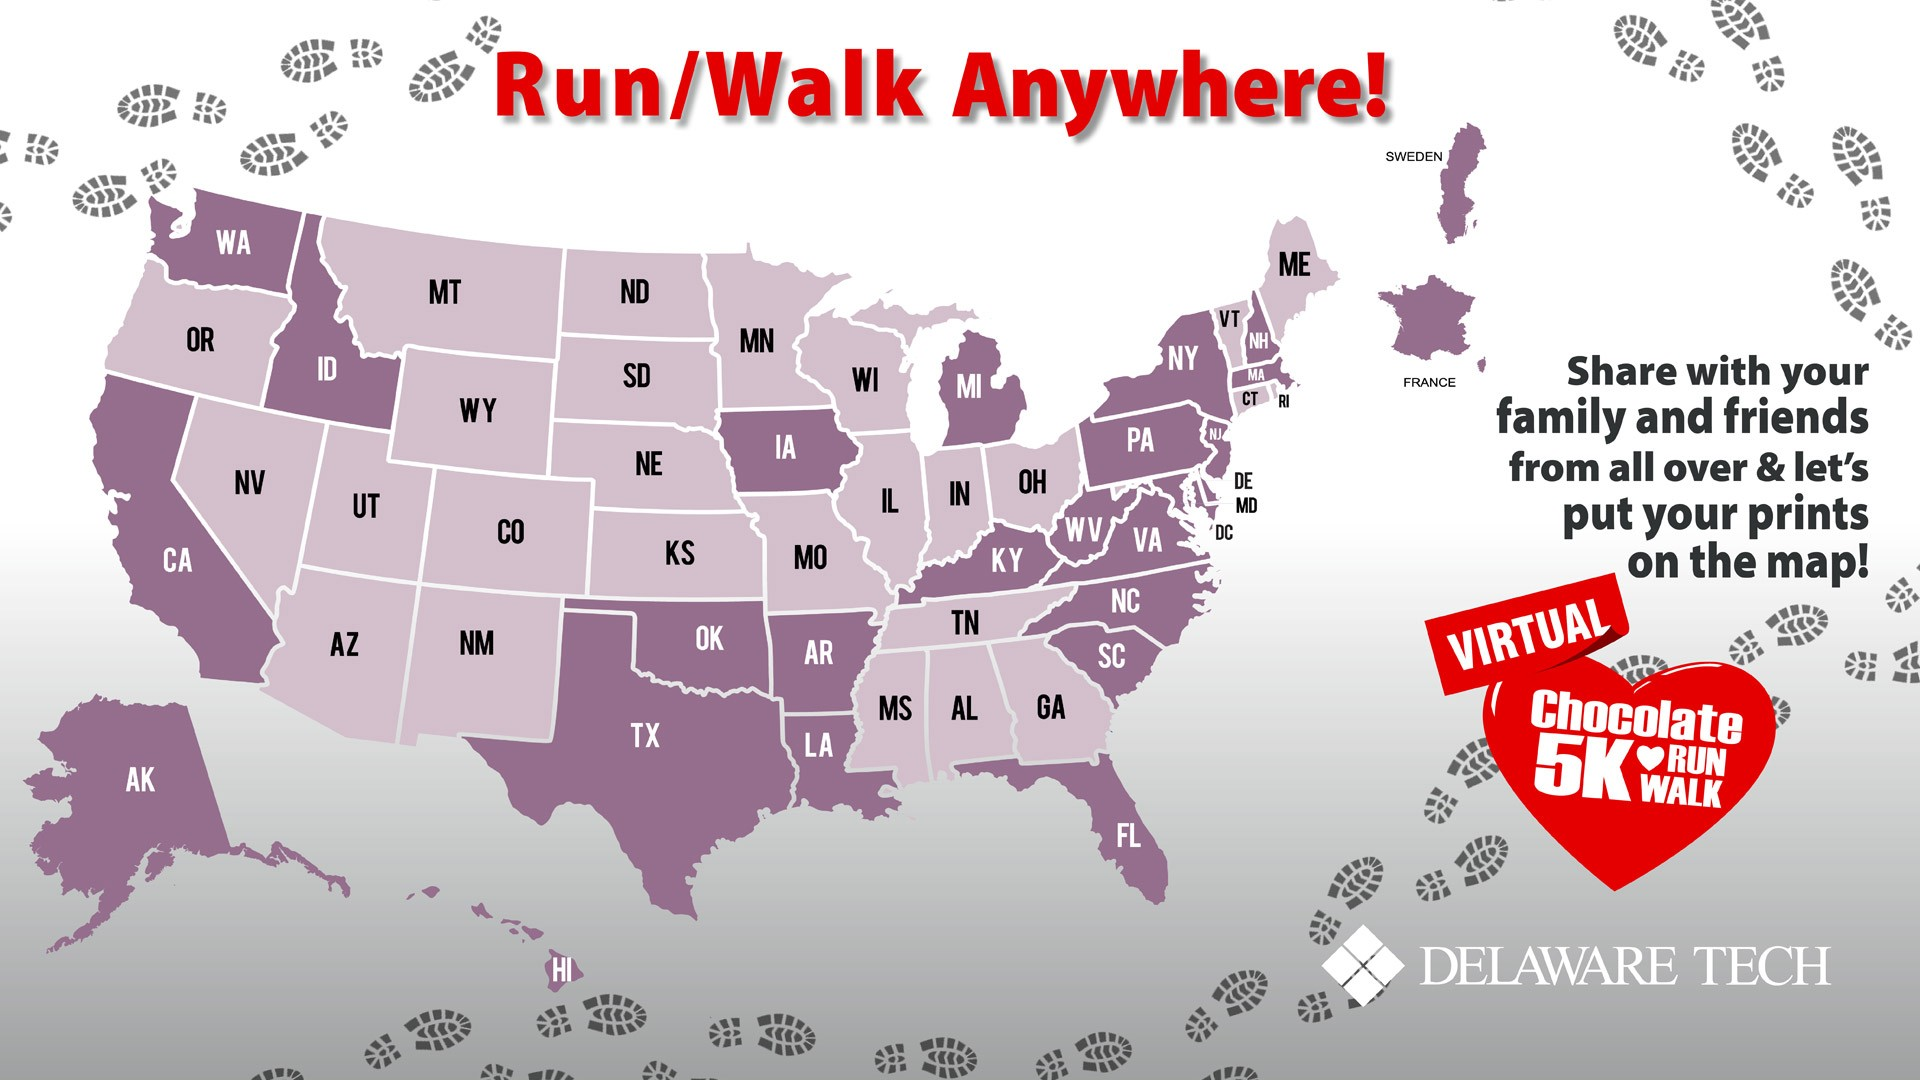 Virtual Chocolate Run/Walk 5K map of participants - Delaware, Maryland, Pennsylvania, Iowa, New Hampshire, and Texas currently represented.